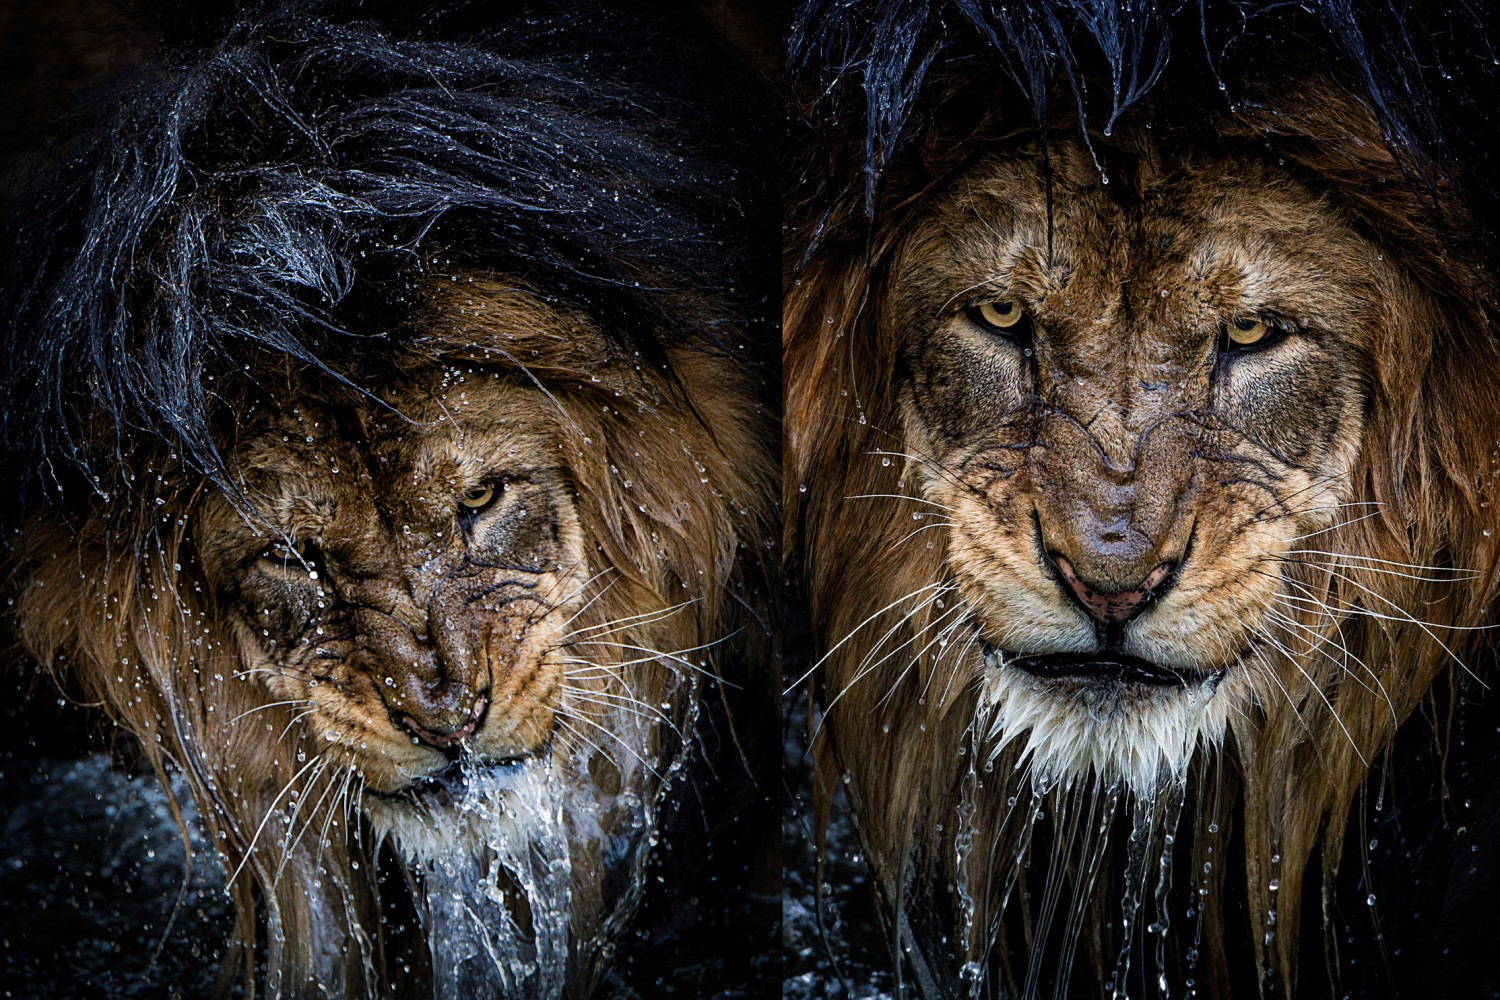 8k Animal Wallpaper Download: 500px Blog » Exclusive: The Story Behind The Most Intense